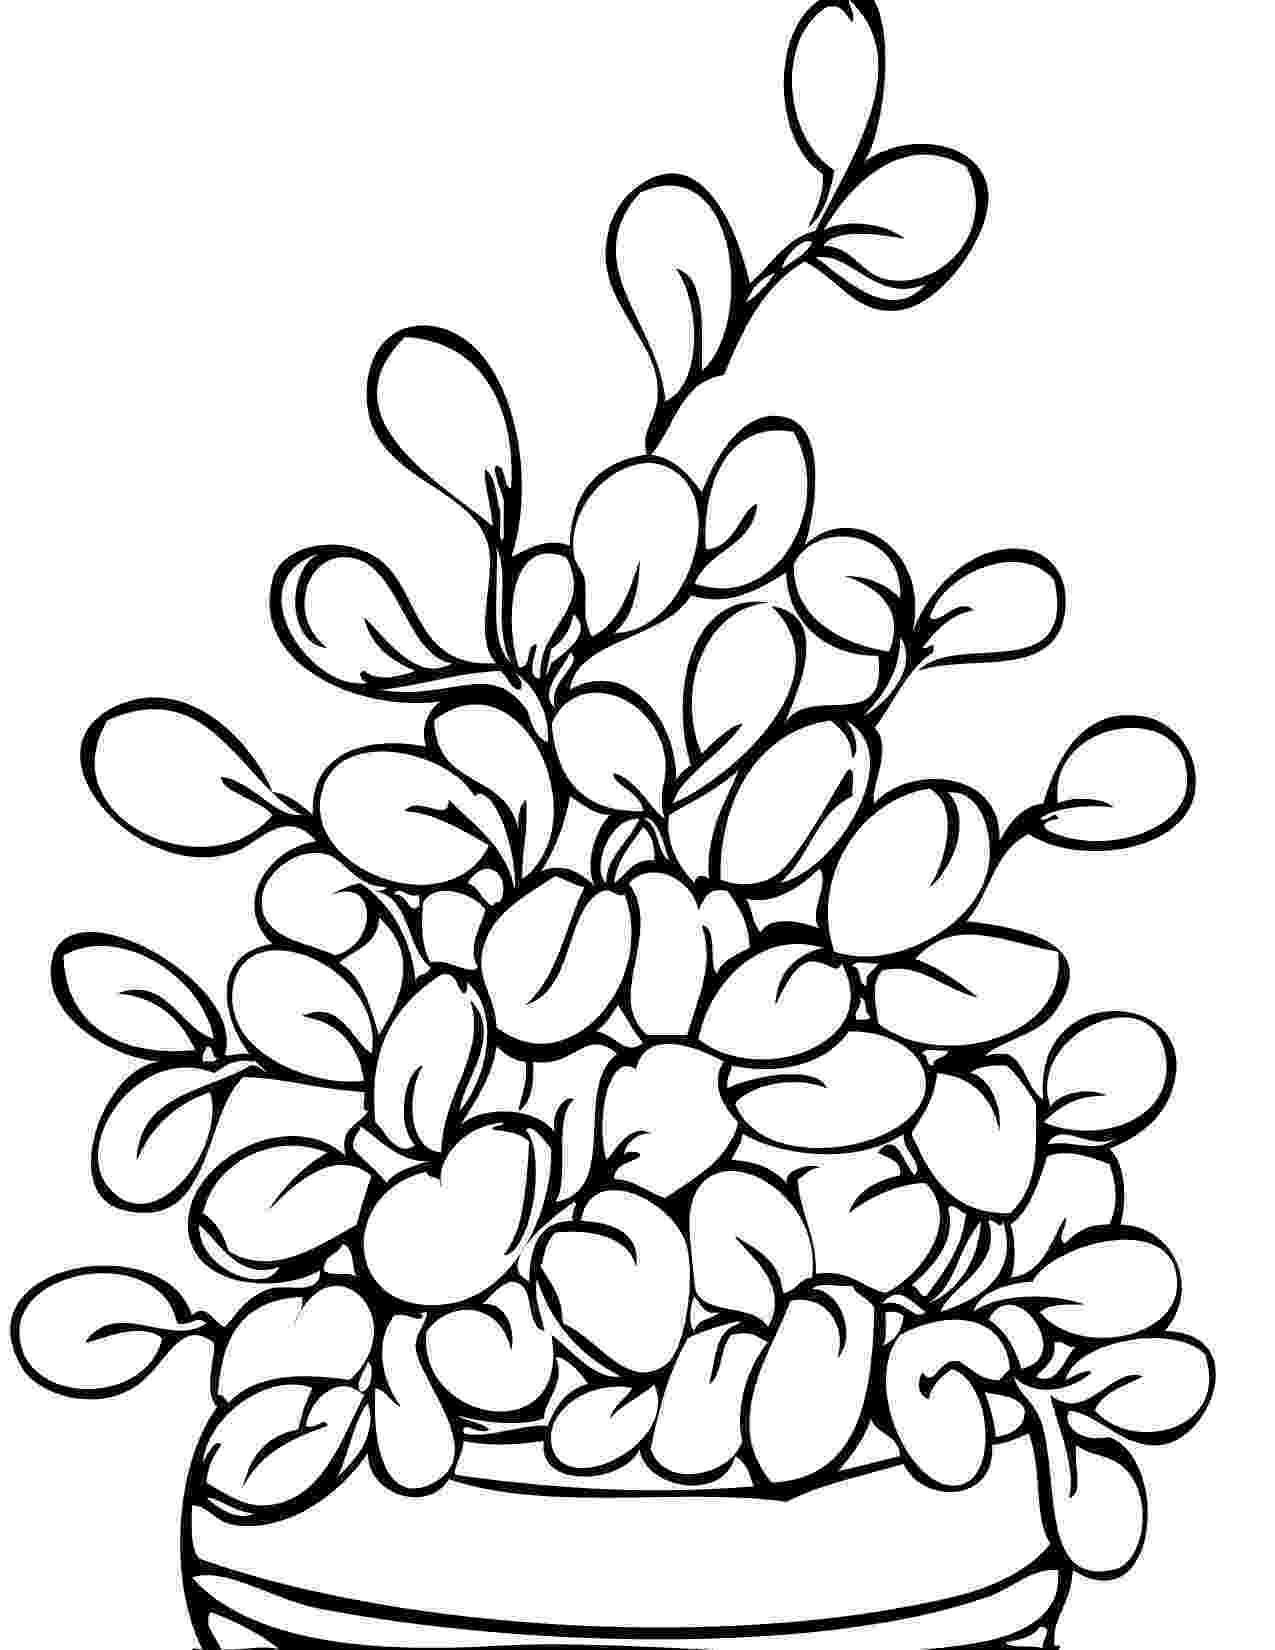 plant colouring sheets plant coloring pages to download and print for free sheets colouring plant